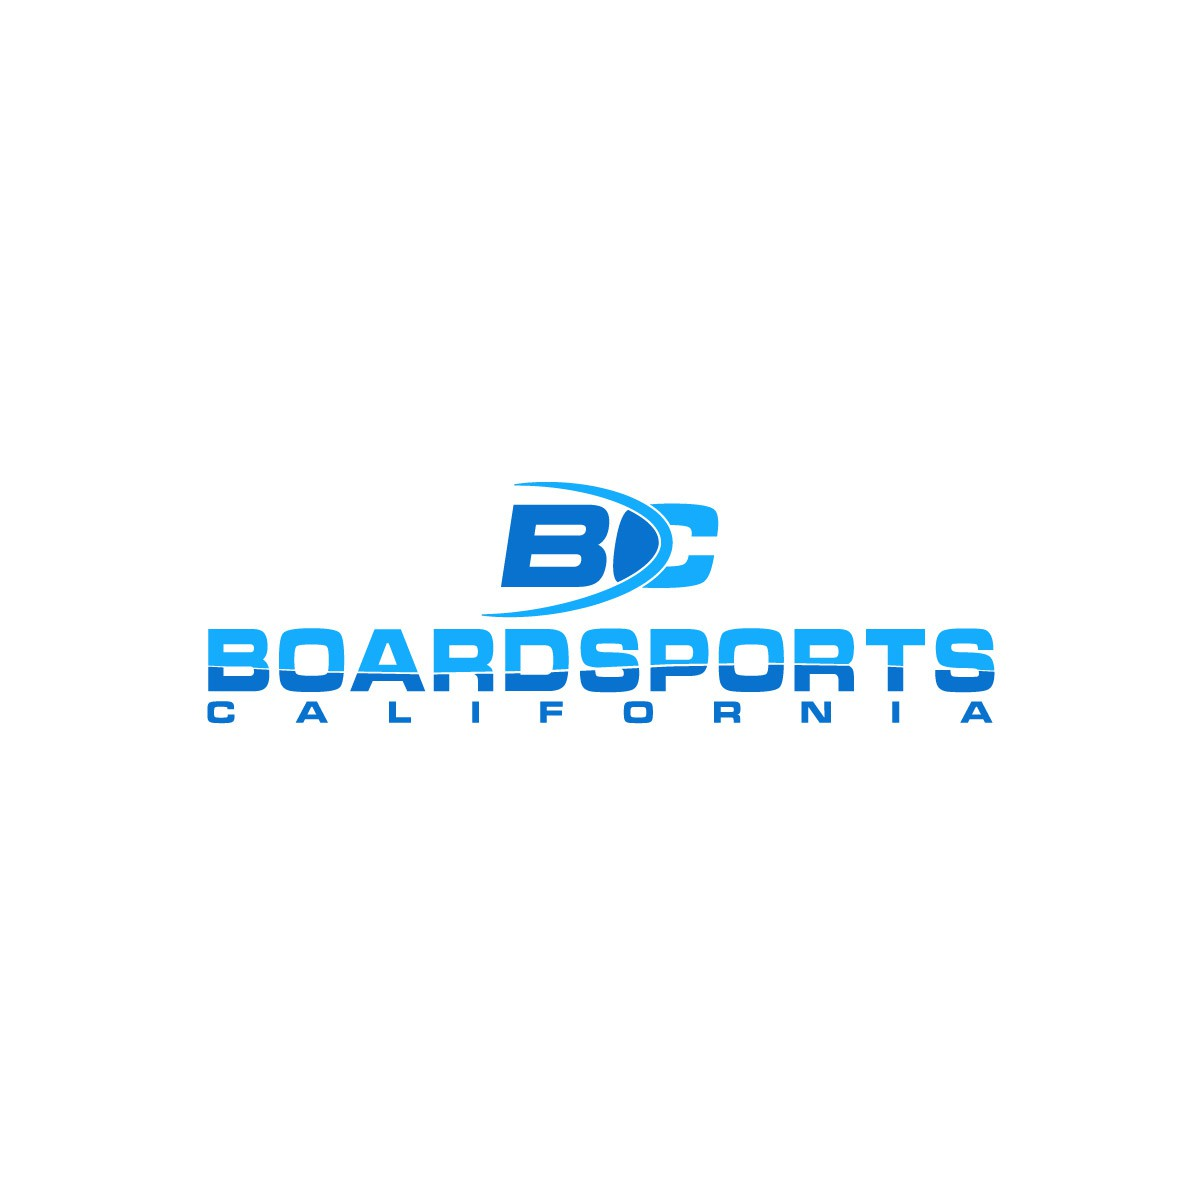 Action Sports Retailer Boardsports - create a bold, powerful and clean illustration